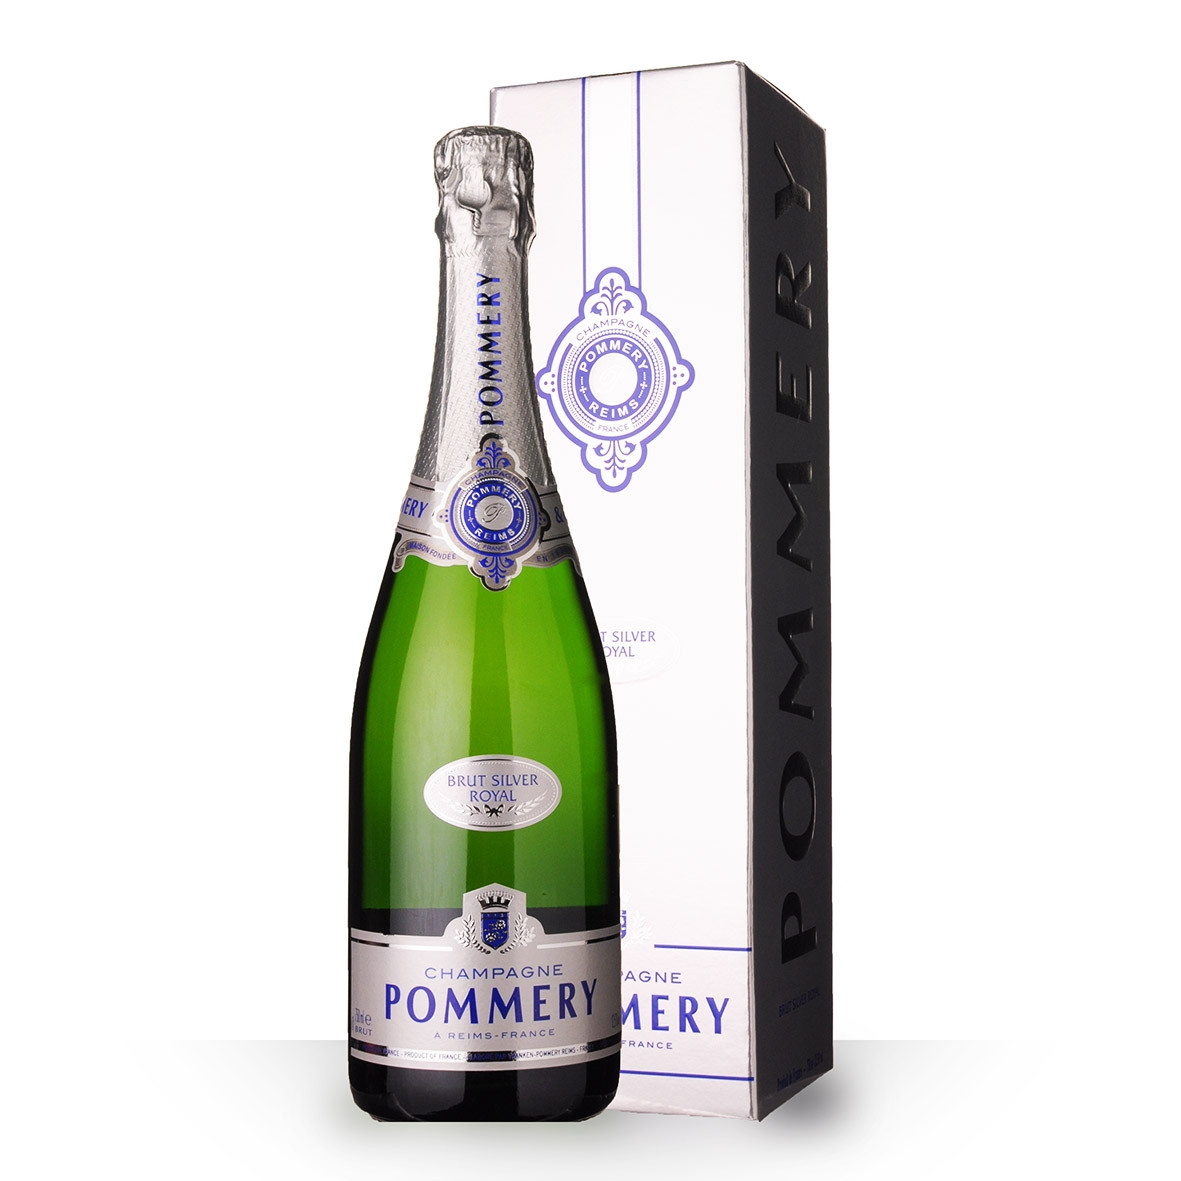 Champagne Pommery Brut Silver Royal 75cl Etui www.odyssee-vins.com